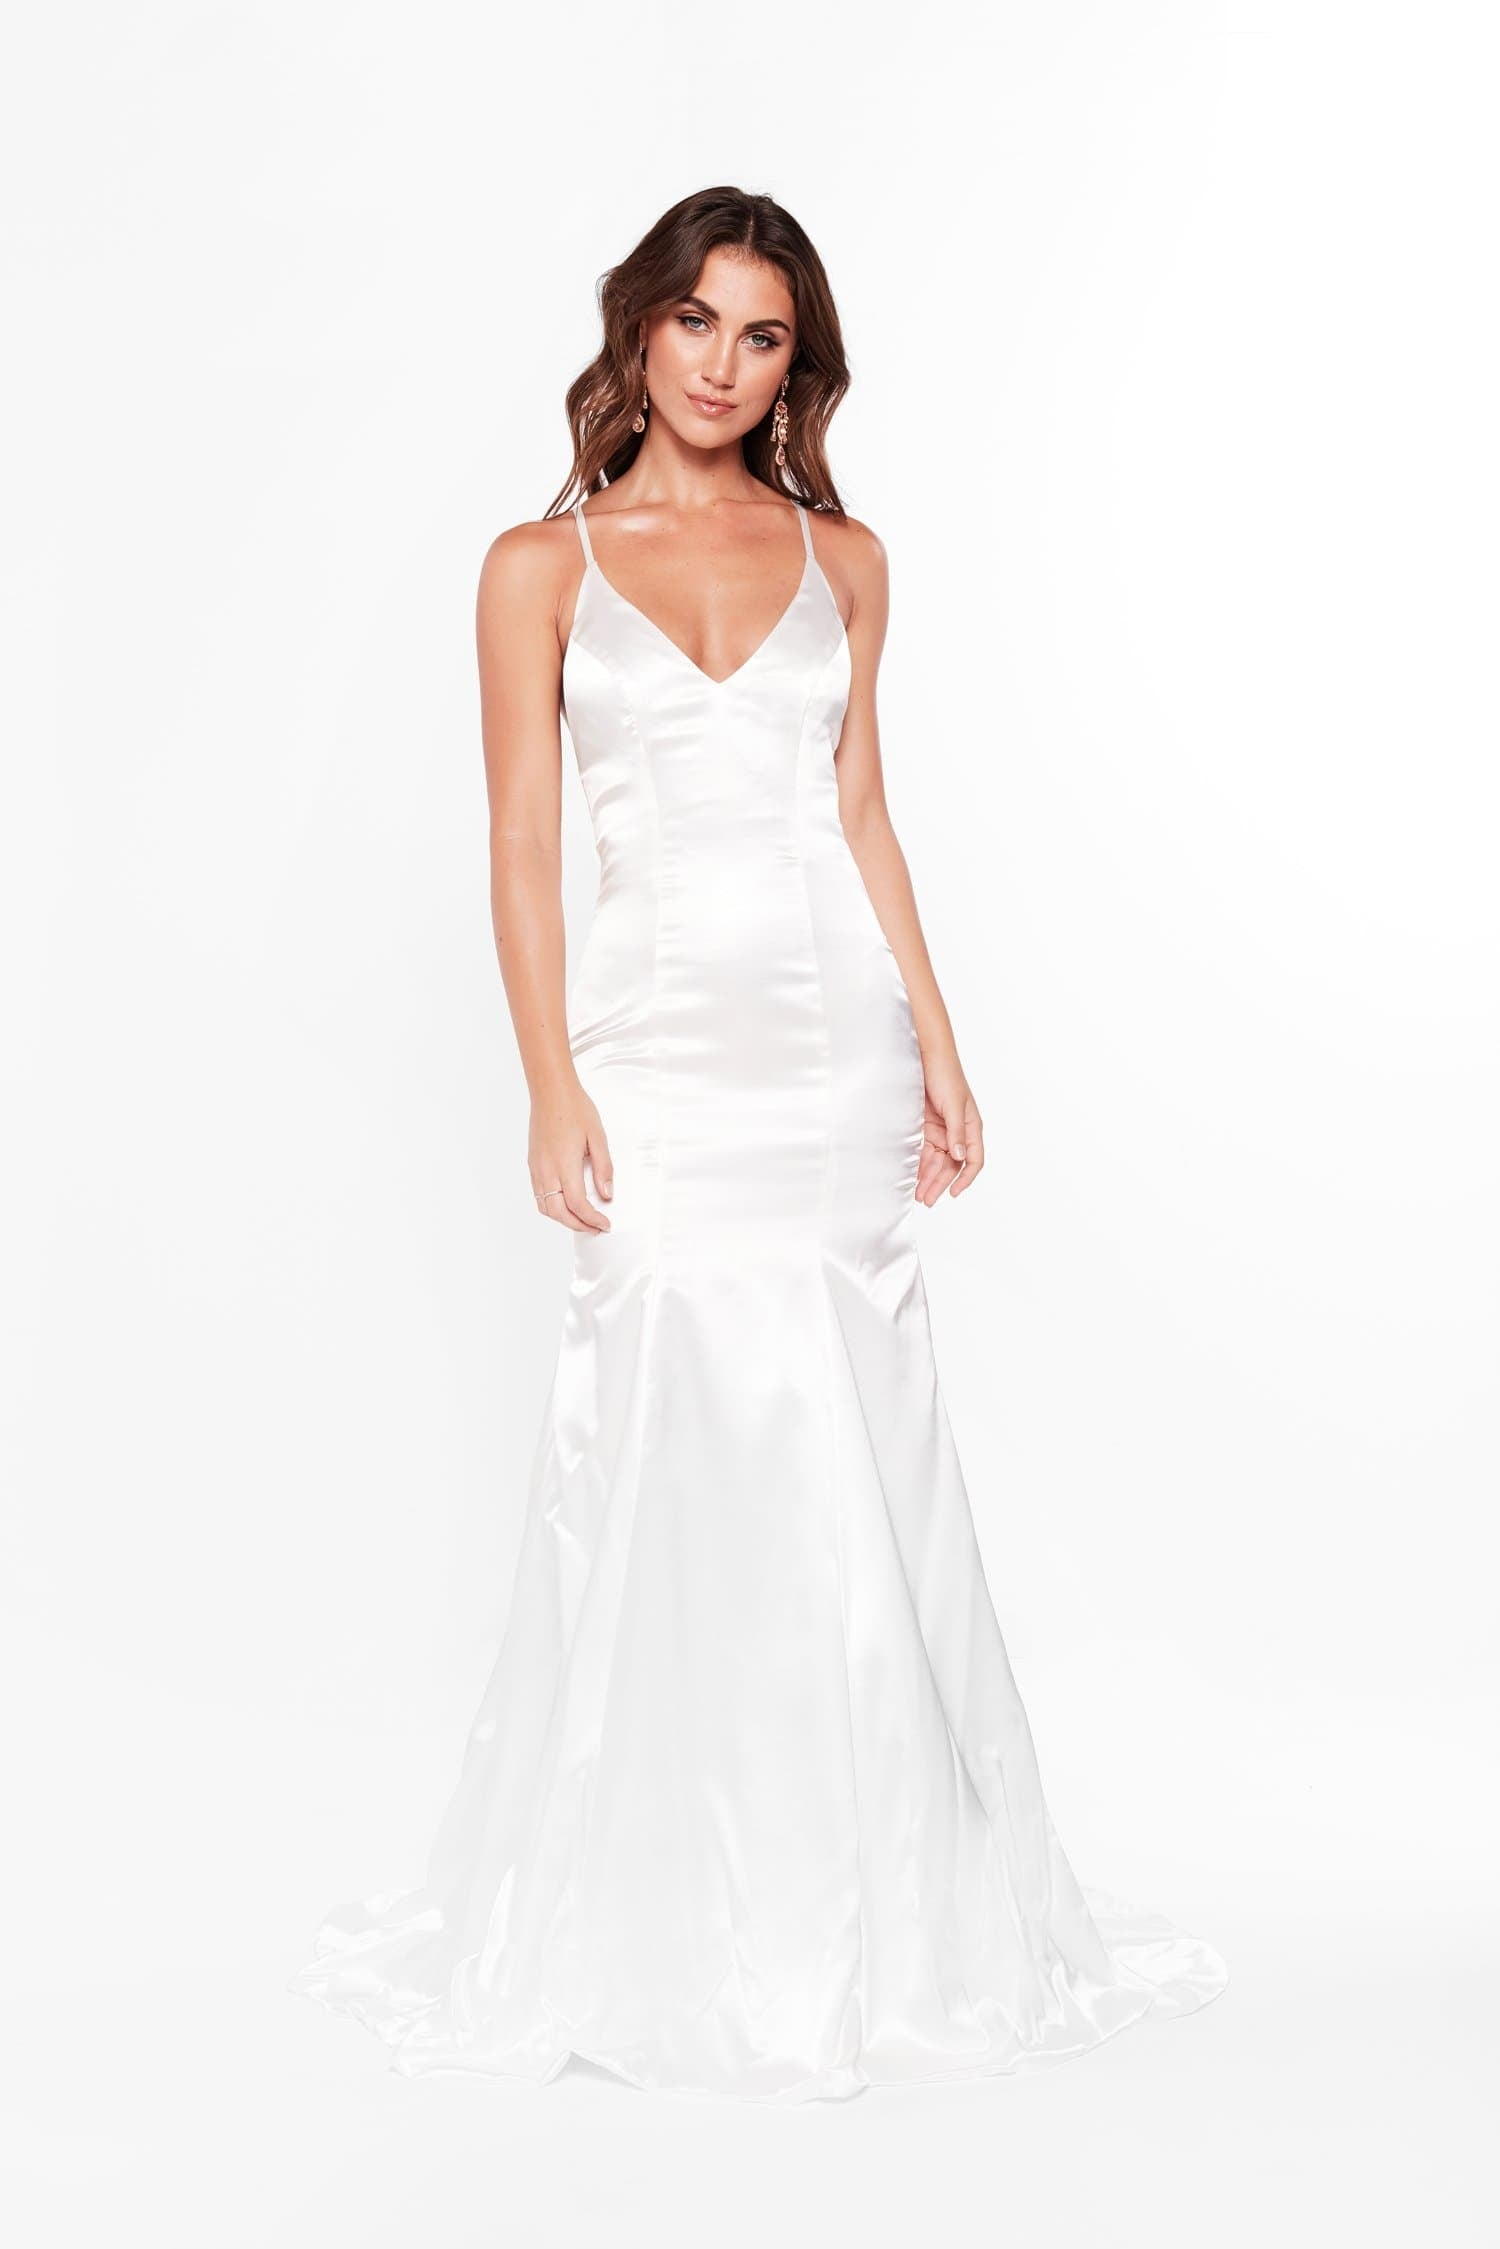 A&N Luxe Cadence Satin Gown - White